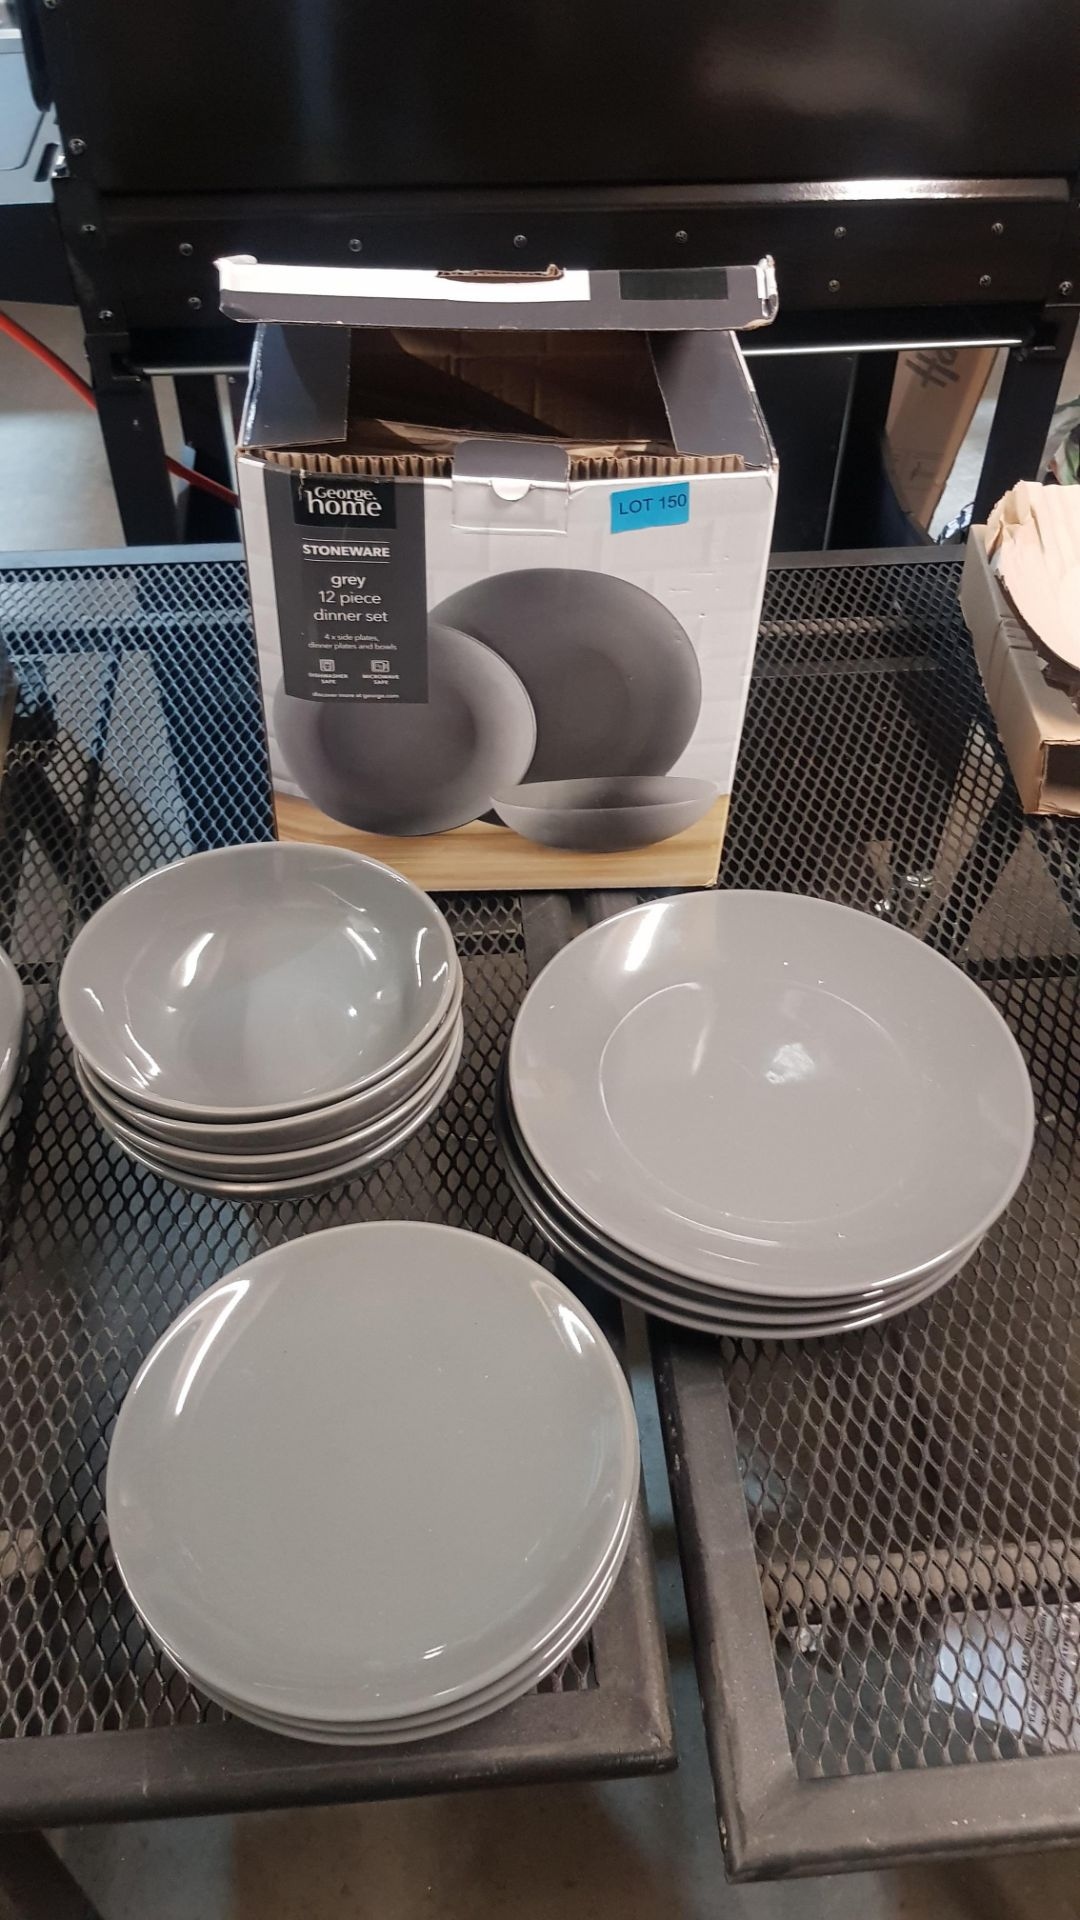 4x GH Stoneware Grey 12 Piece Dinner Set (Lot Comes With 3x Boxes) - Image 2 of 5